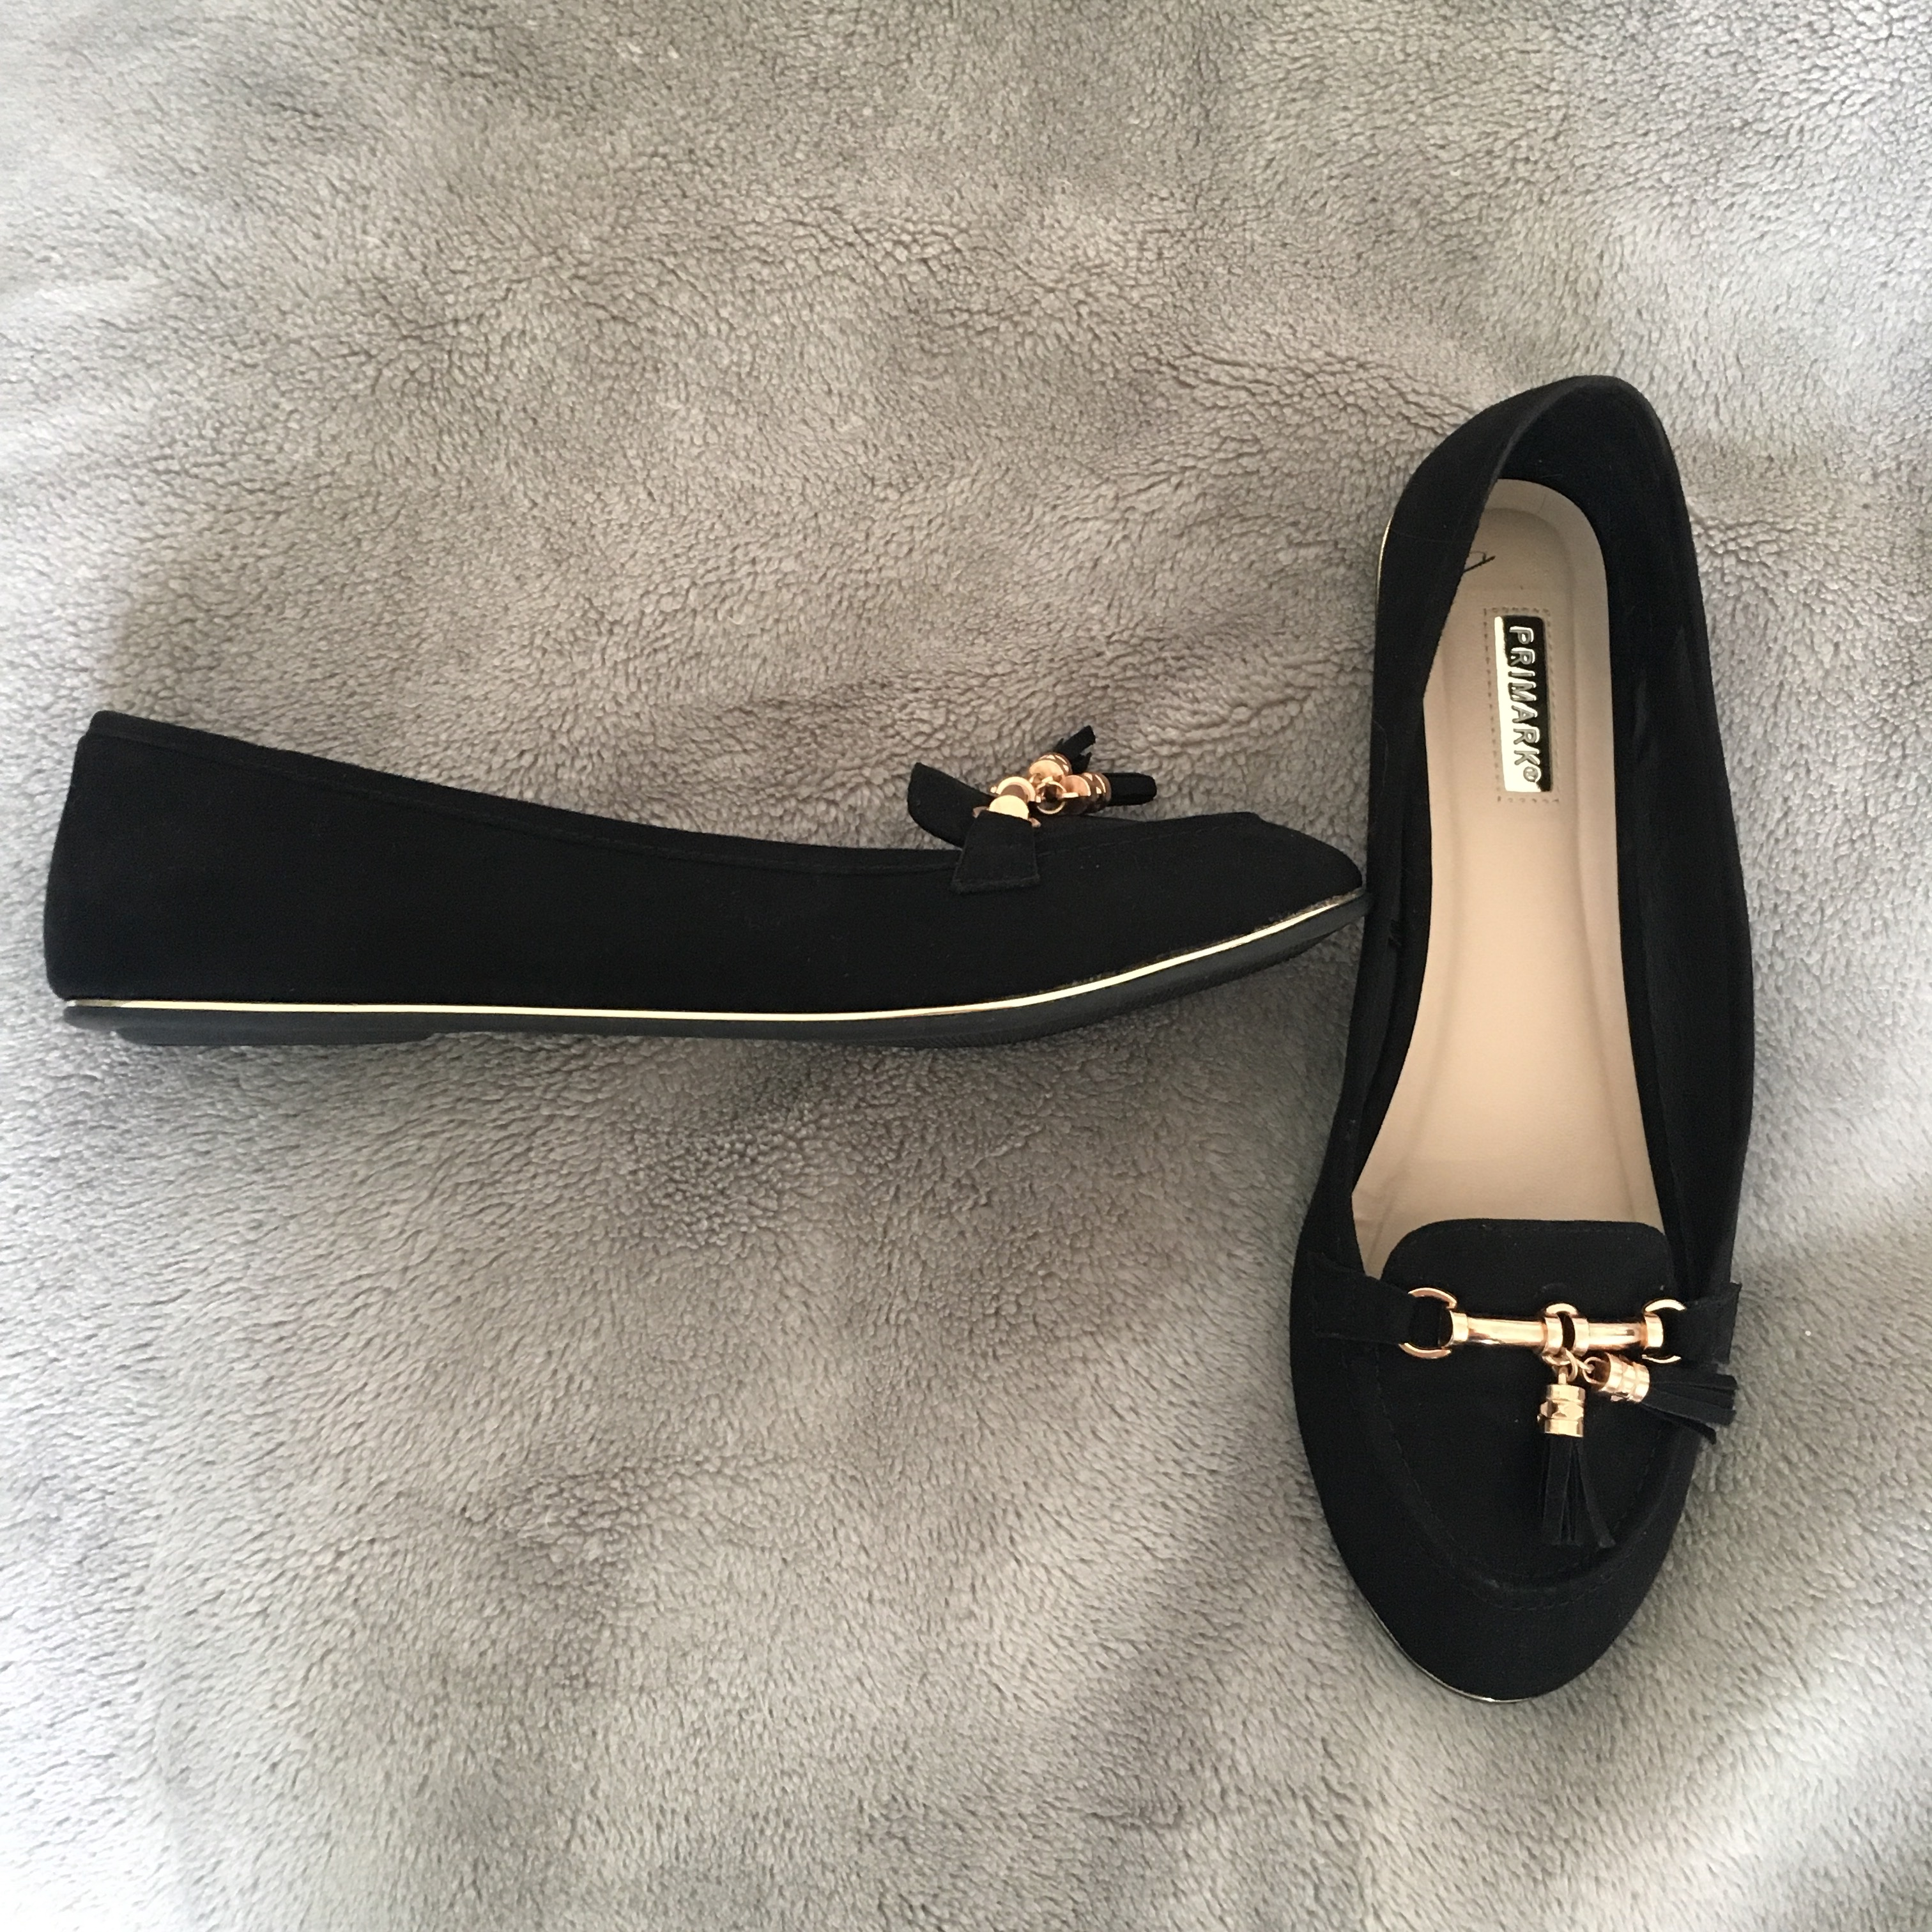 Primark Black Pumps/Dolly Shoes with